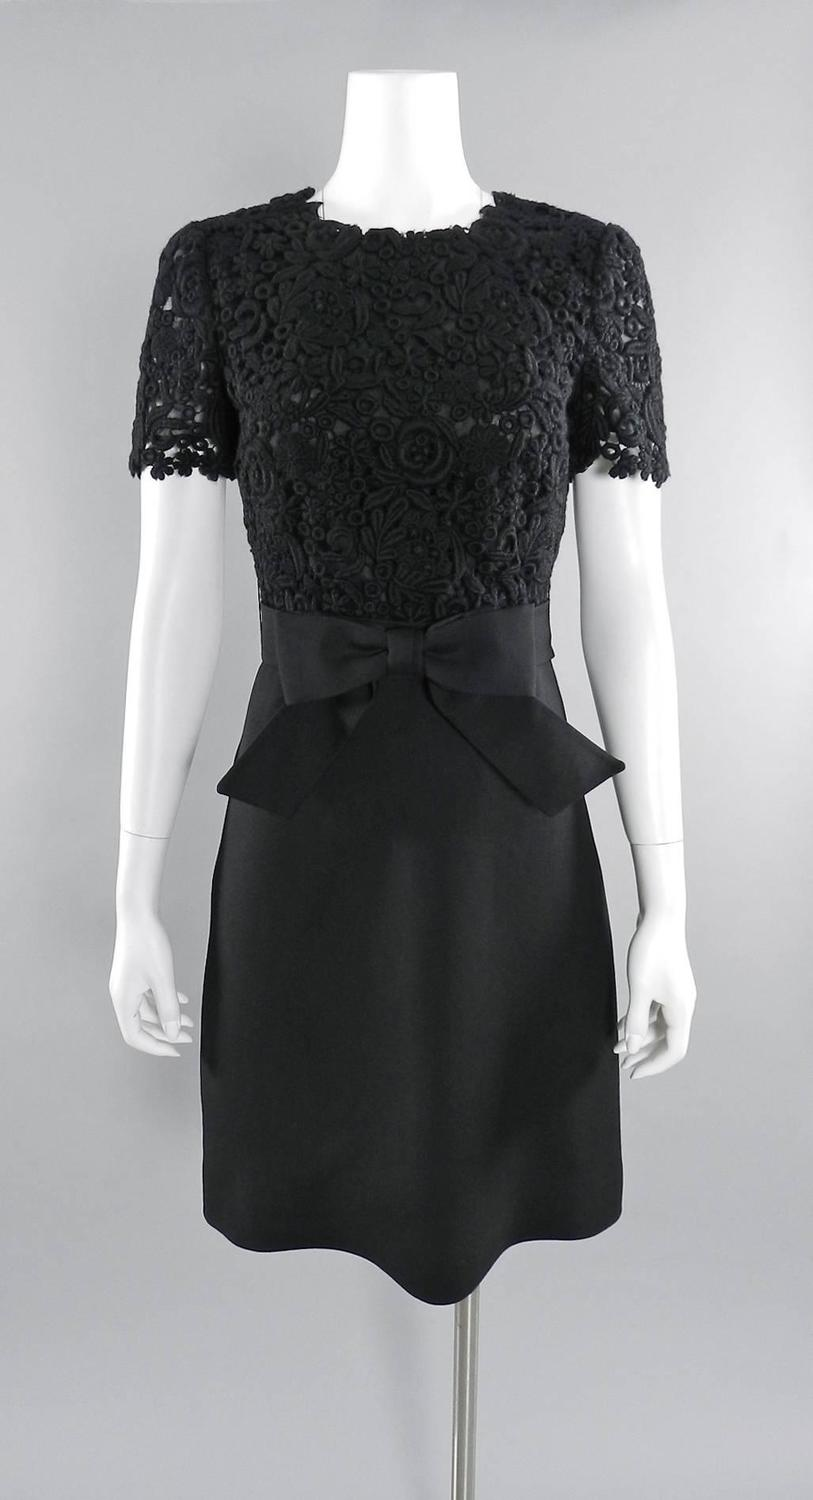 a1e7fbd4d06 Valentino black Lace top 1960s style Cocktail Dress For Sale at 1stdibs